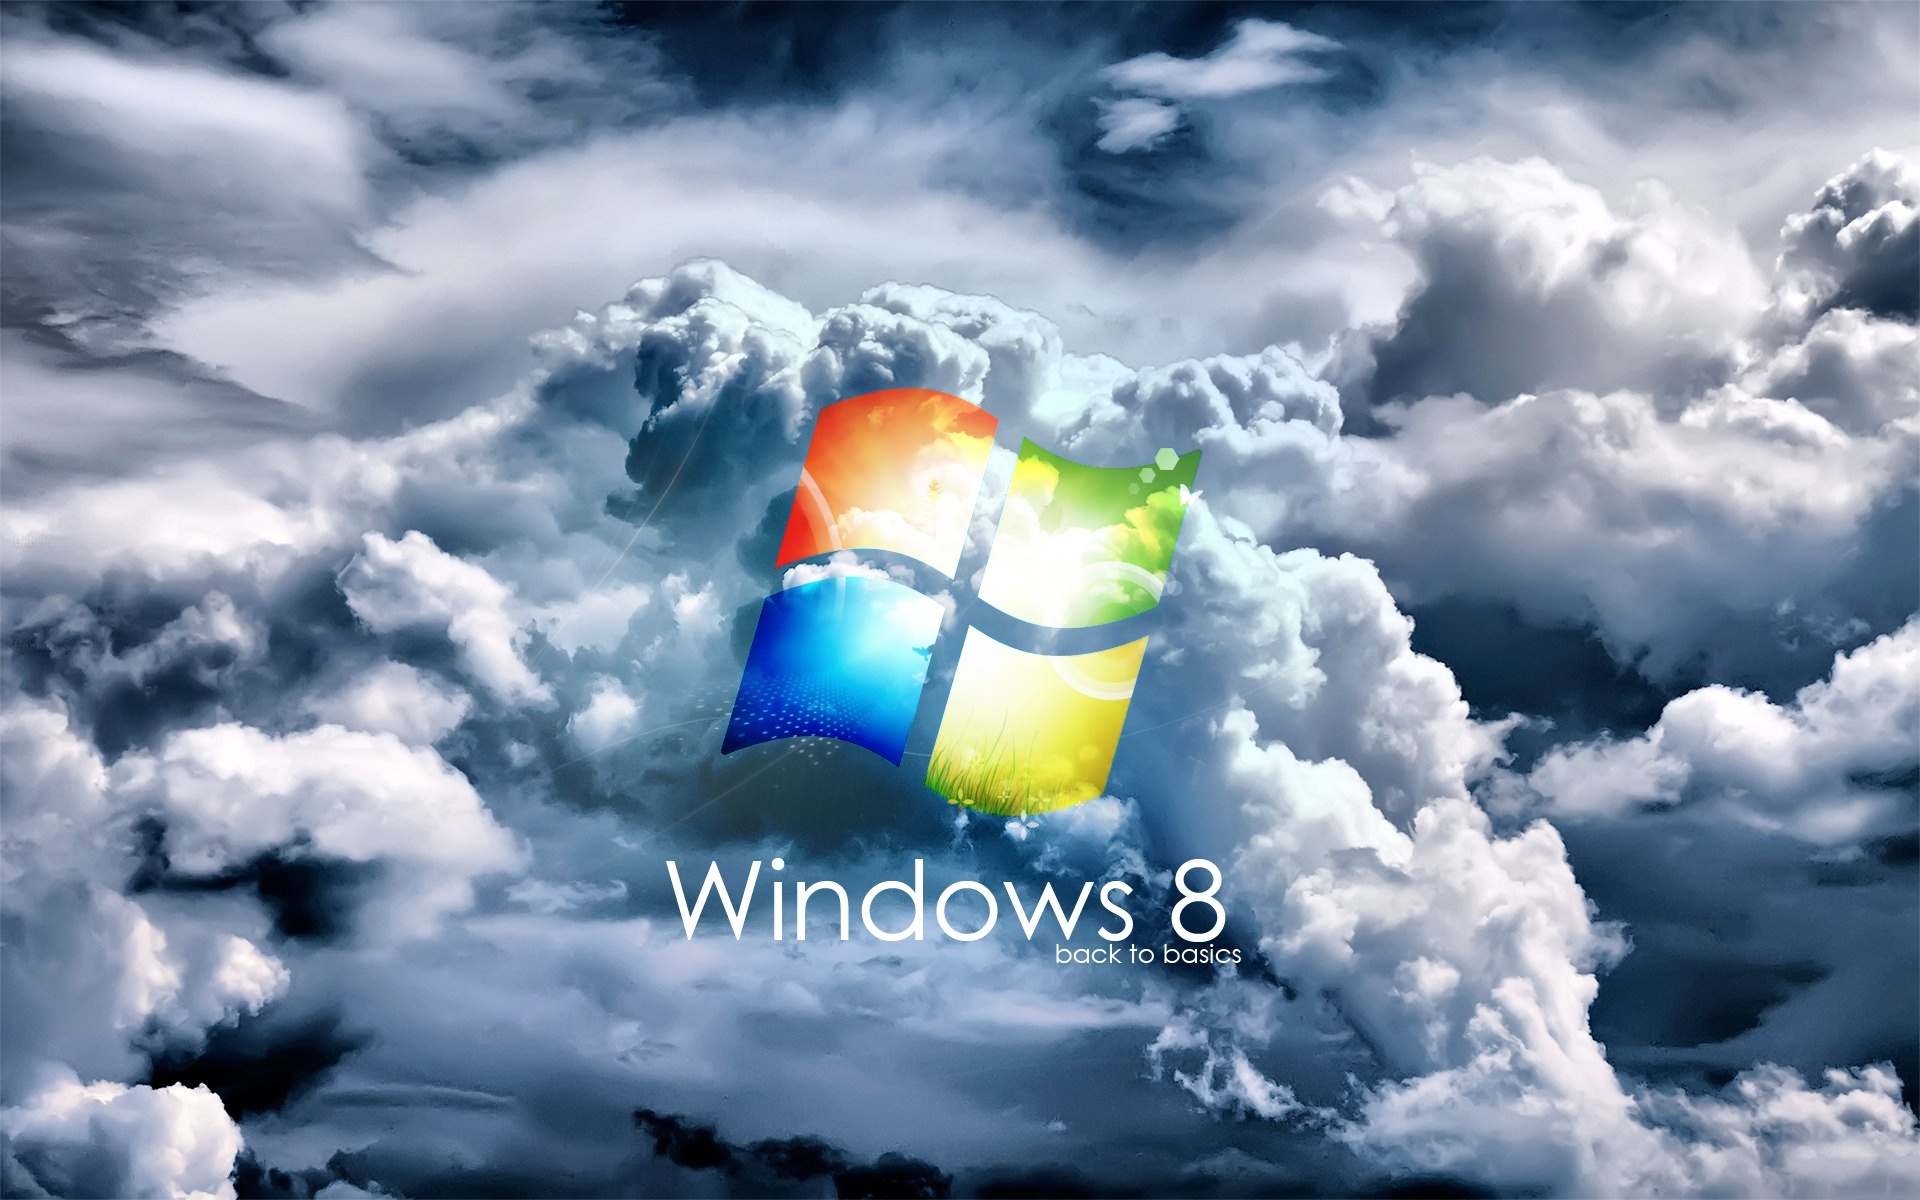 Description: The Wallpaper above is Windows 8 Clouds Wallpaper in Resolution 1920x1200. Choose your Resolution and Download Windows 8 Clouds Wallpaper